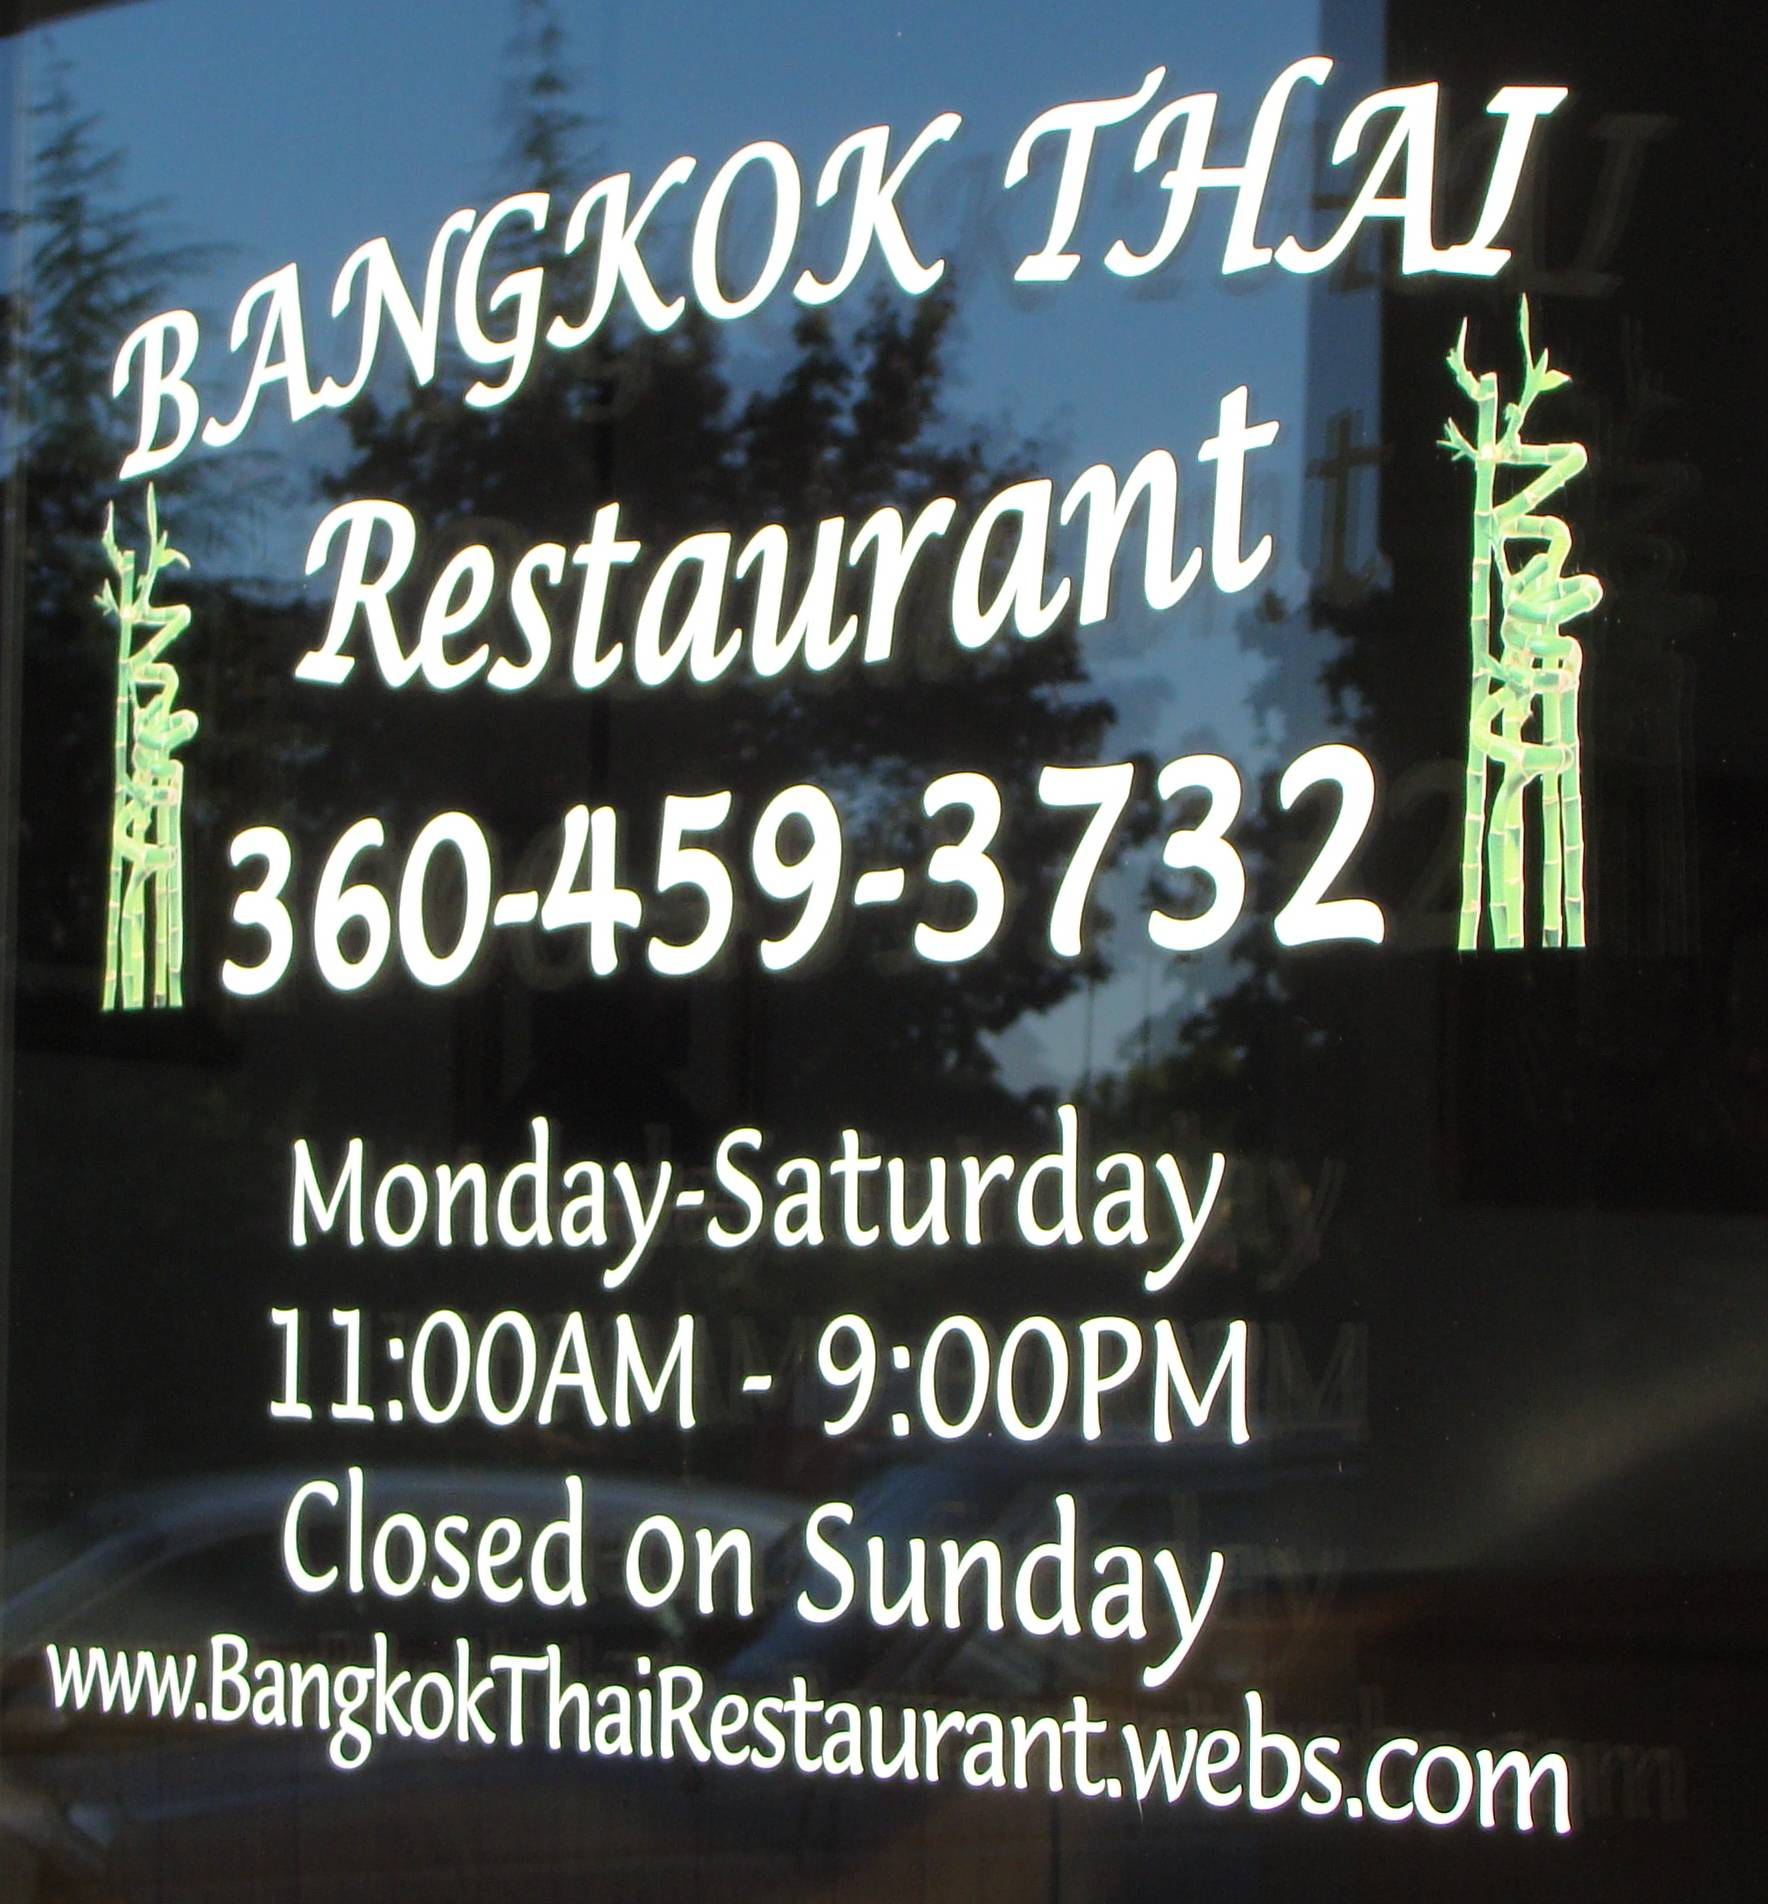 Bangkok Thai Restaurant, 700 Sleater Kinney RD. S.E. Suite C2,     (in the Fred Meyer complex), Lacey, WA, 98503